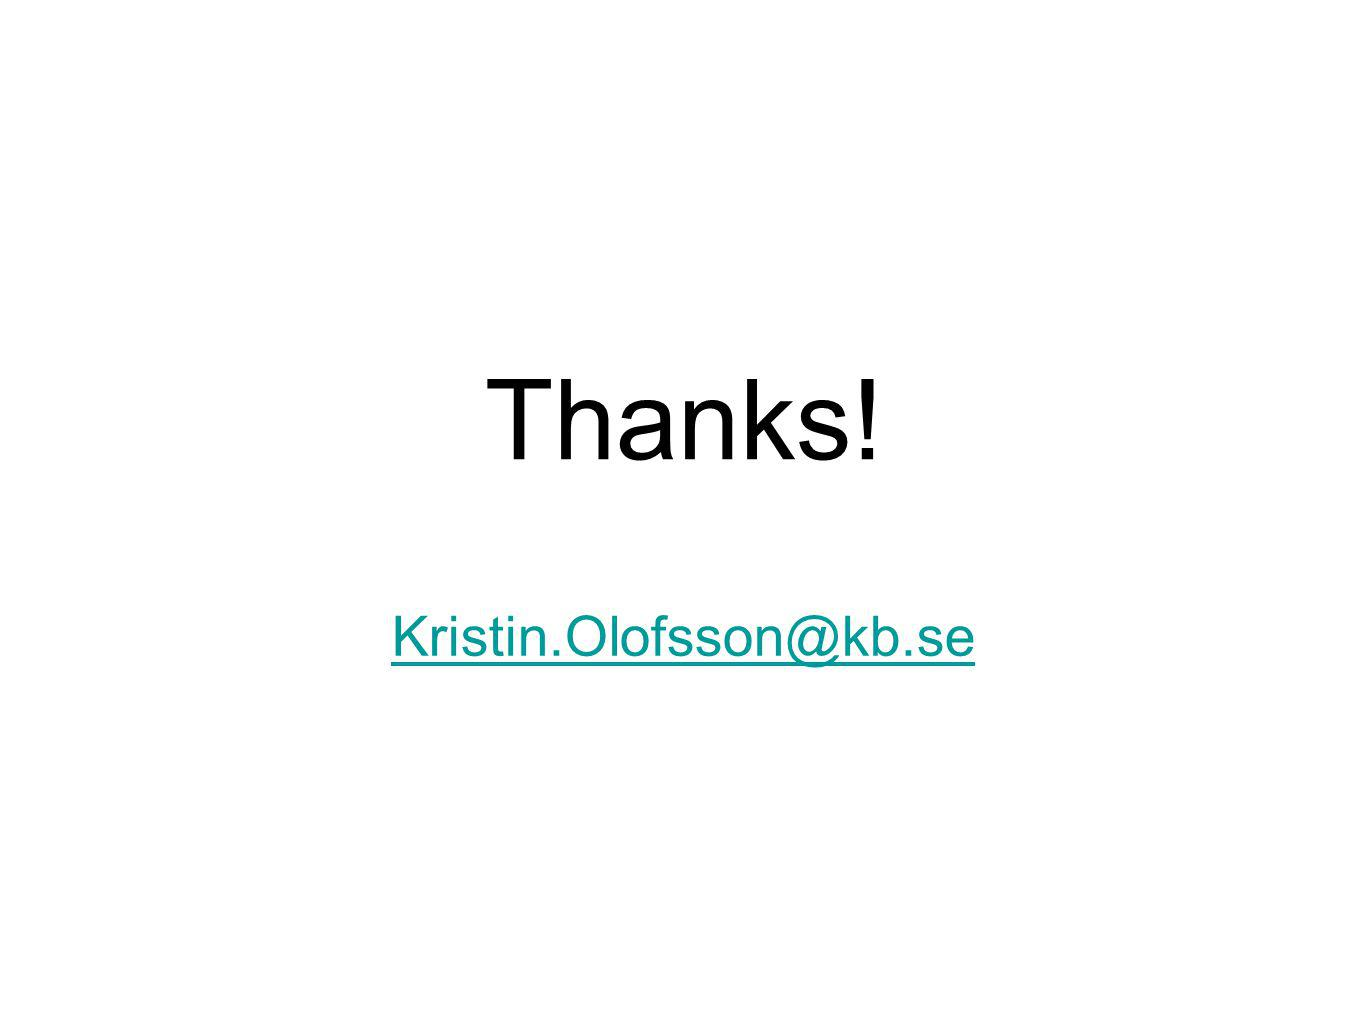 Thanks! Kristin.Olofsson@kb.se